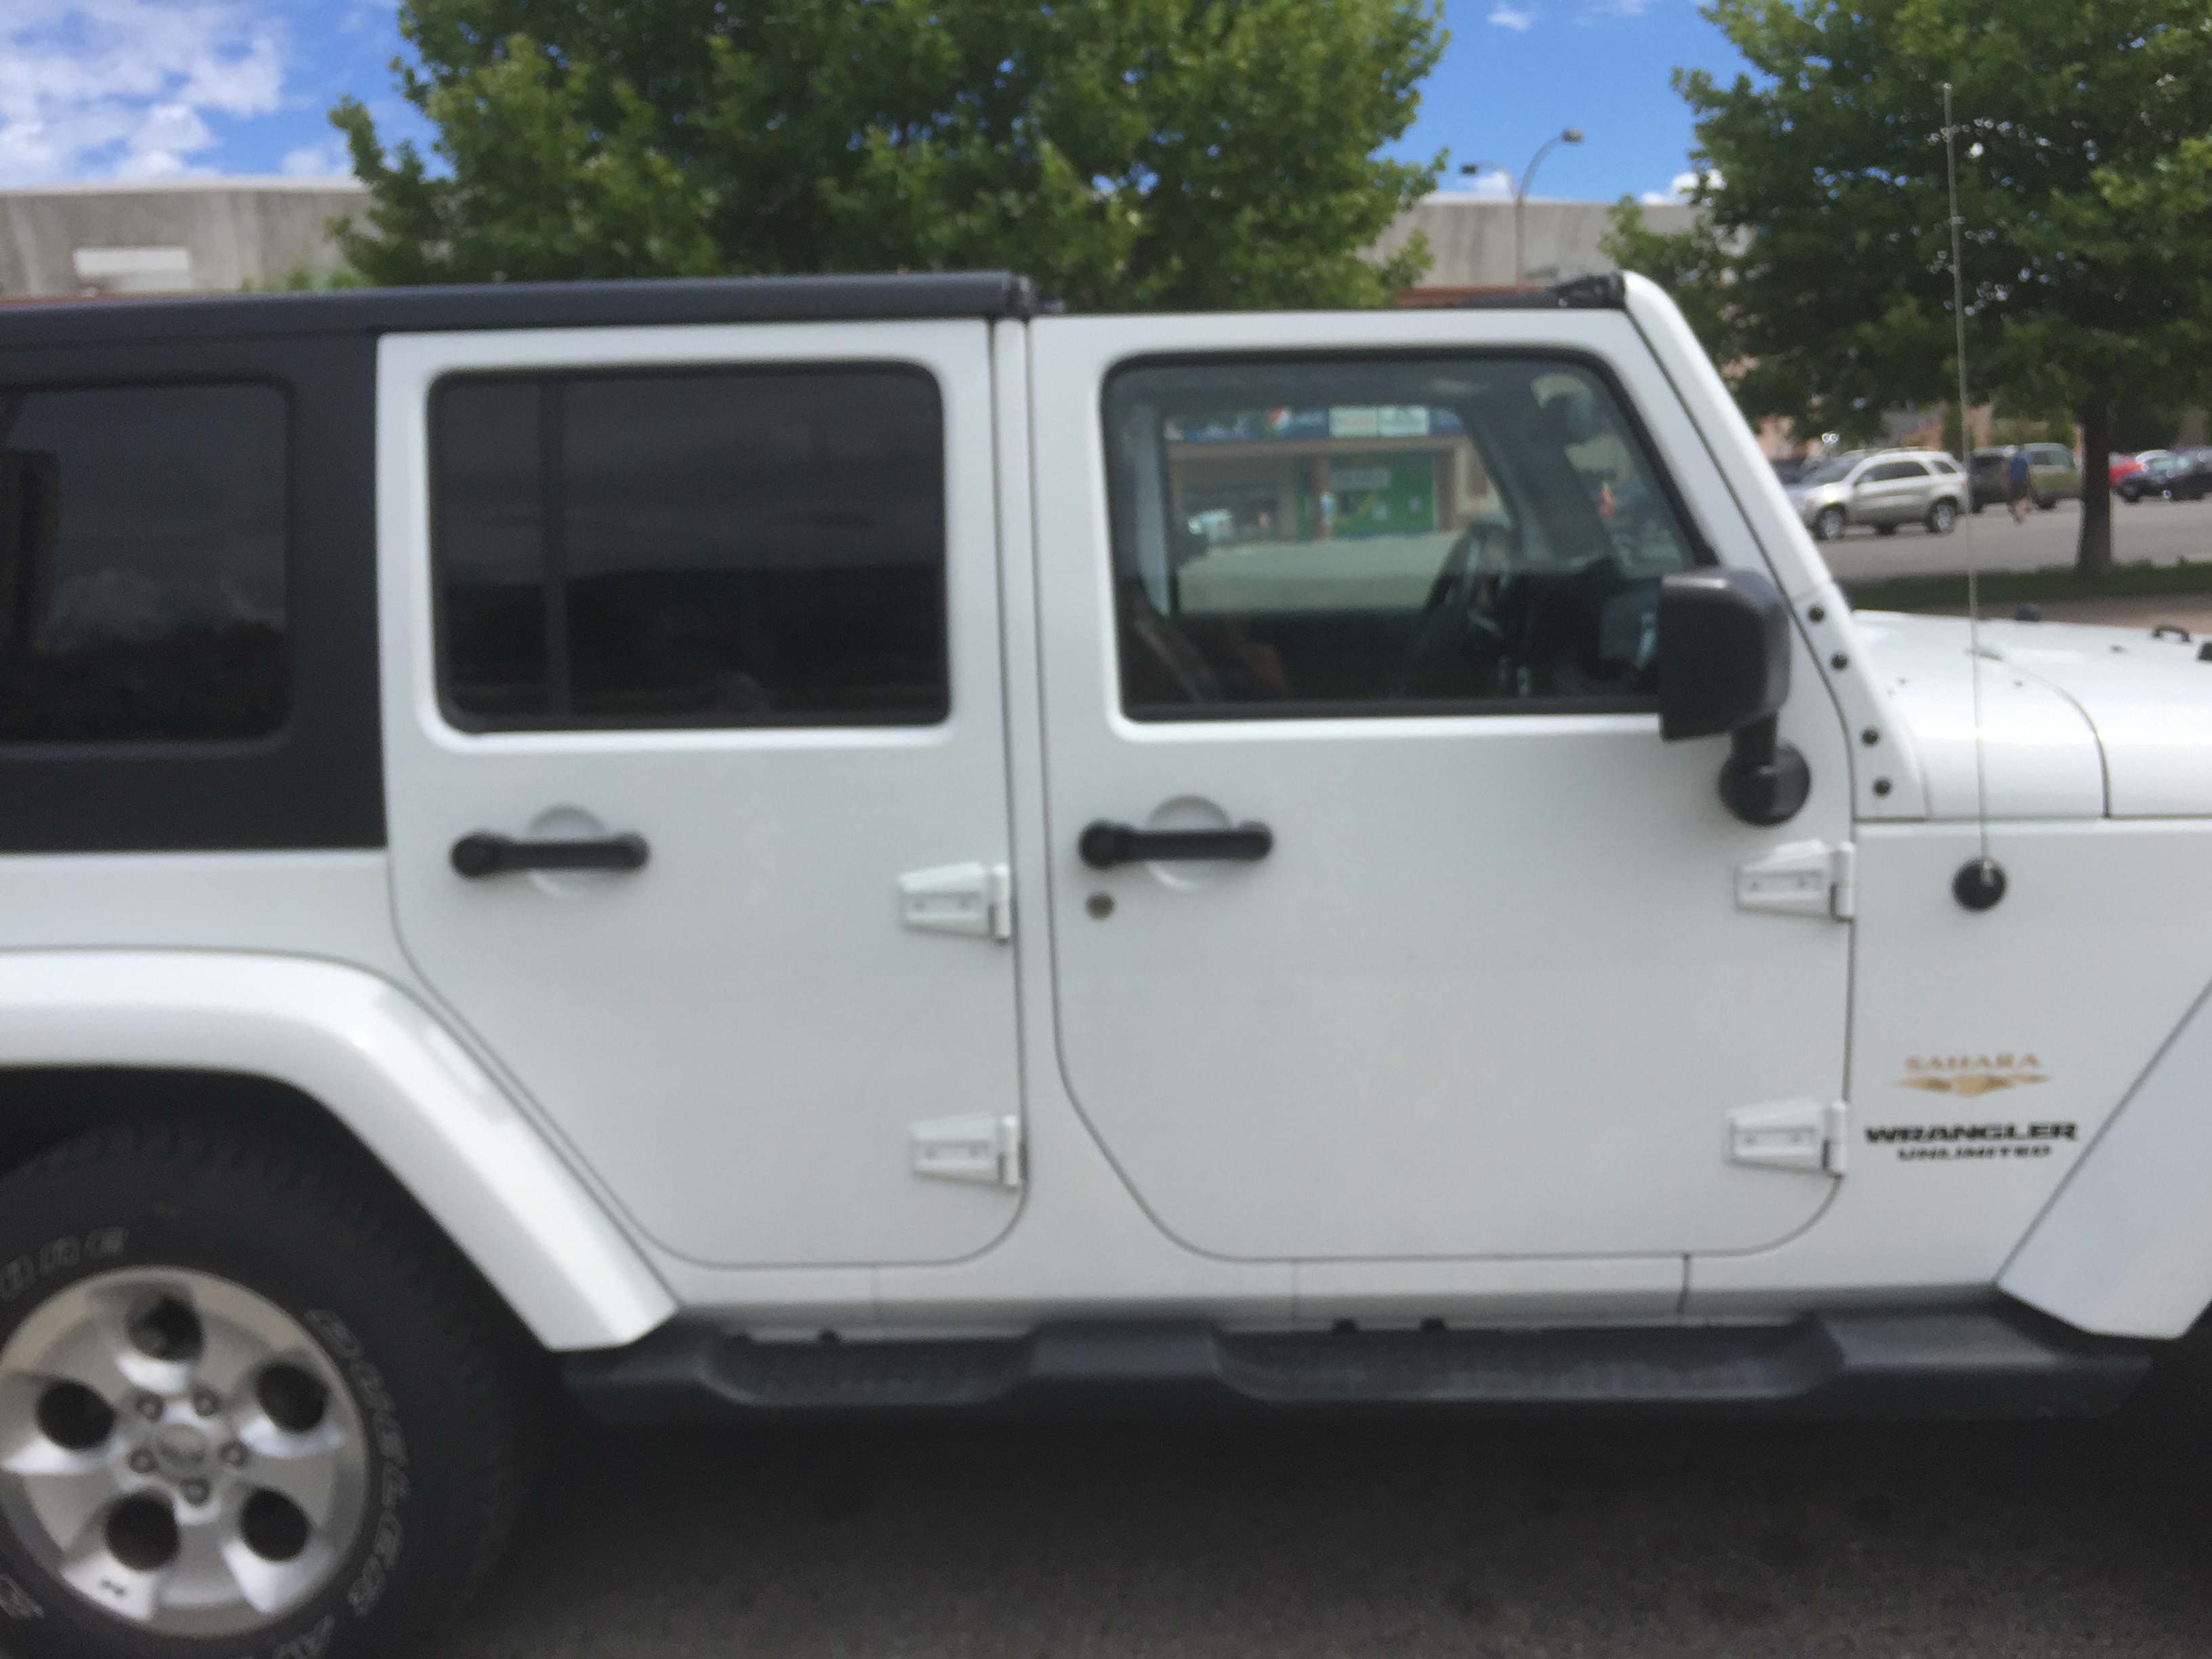 Teens and Money I Am 13 Saving For A Jeep Wrangler At 17